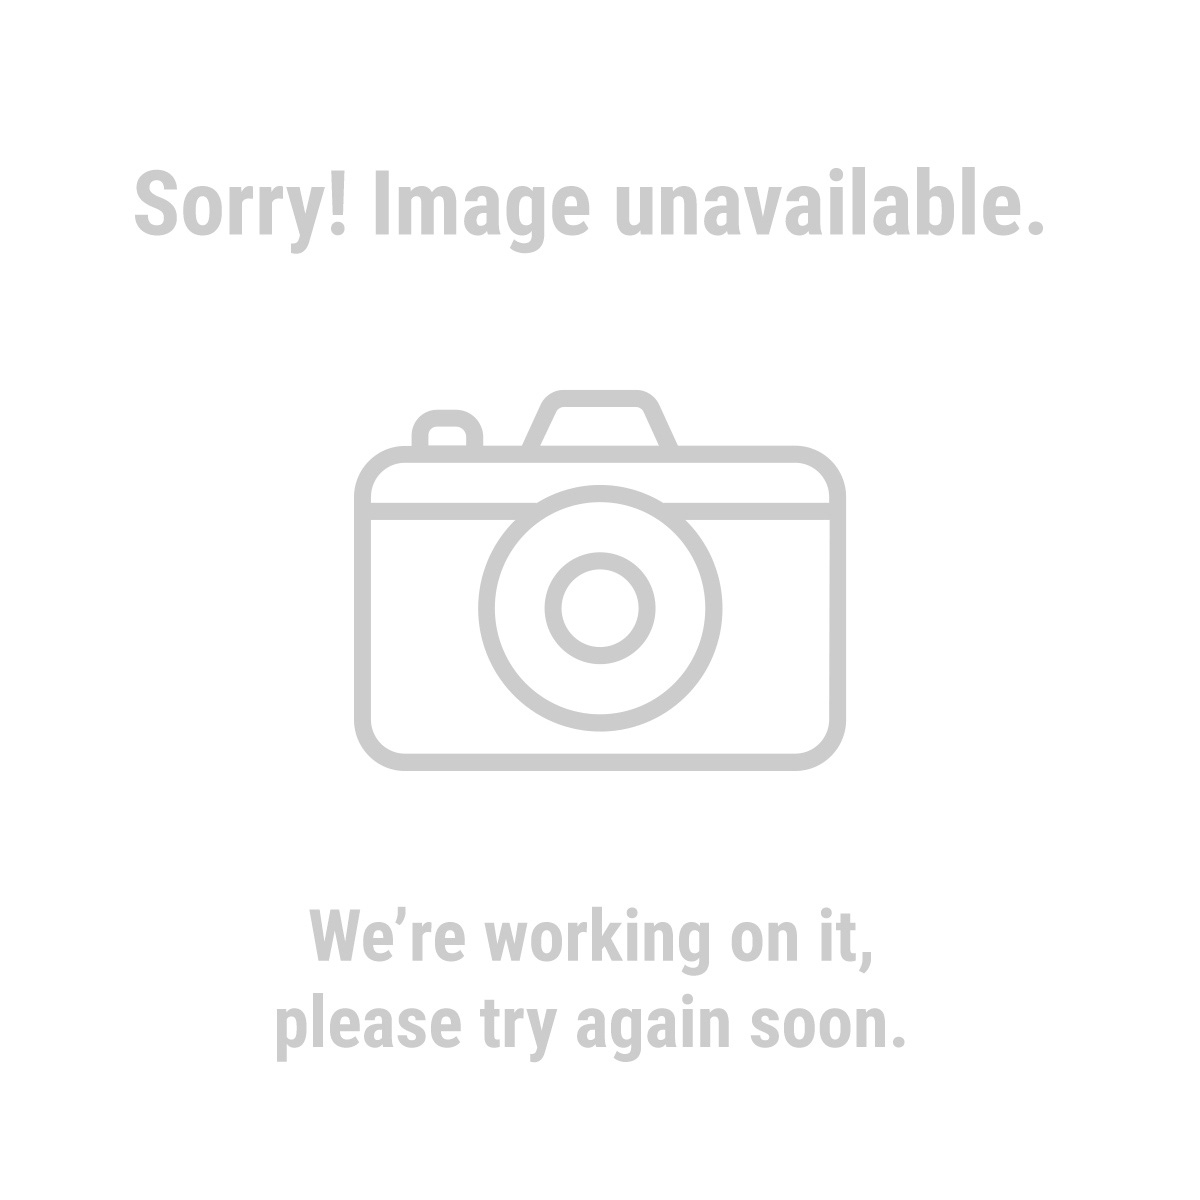 Vanguard 63127 125 Volt, 15 Amp Male Plug Connector